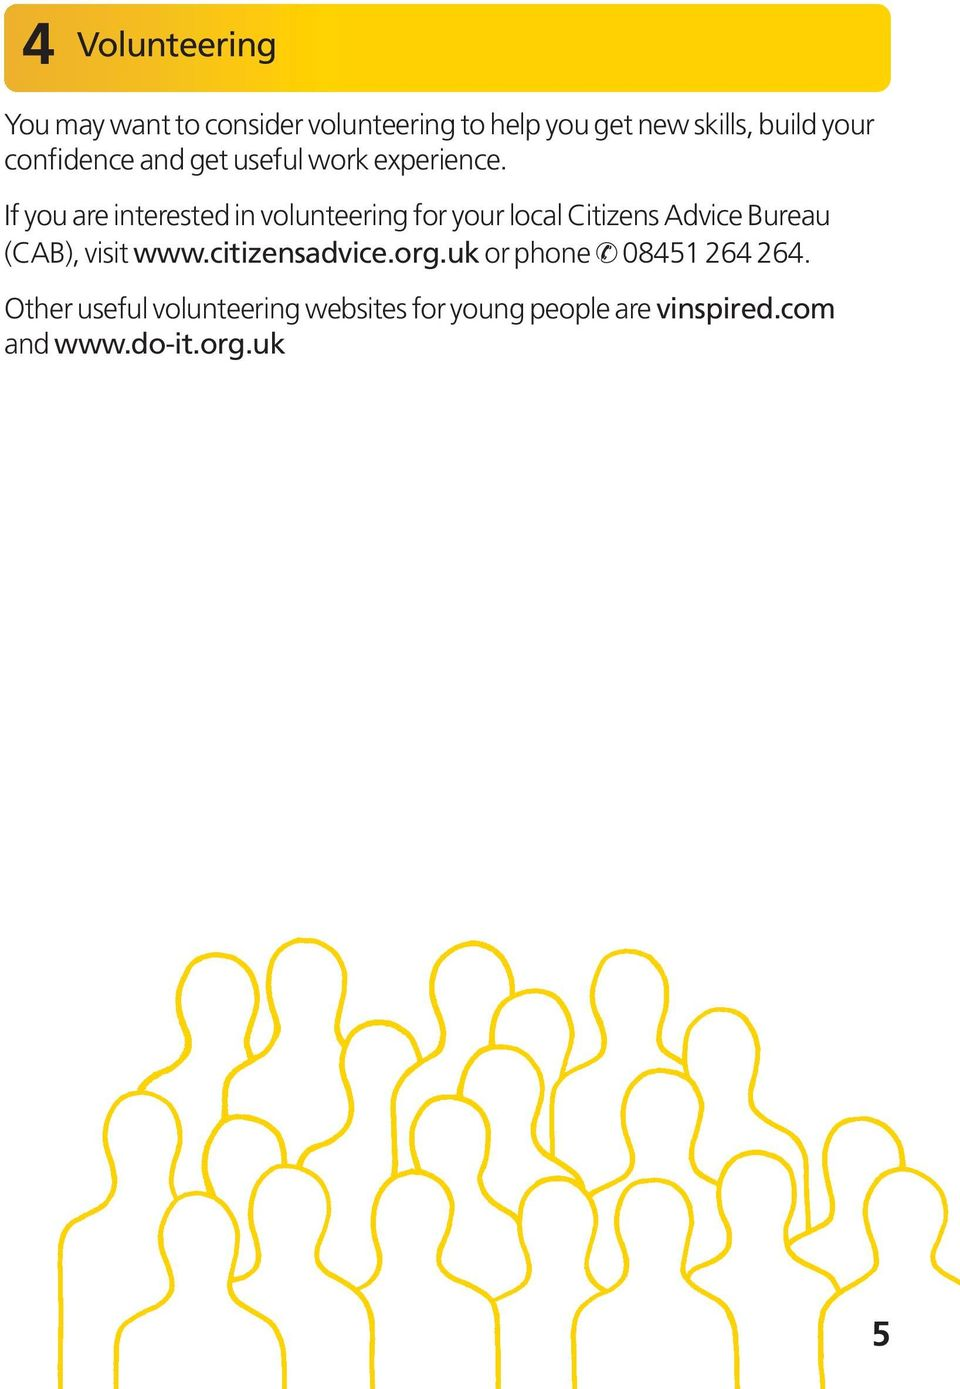 If you are interested in volunteering for your local Citizens Advice Bureau (CAB), visit